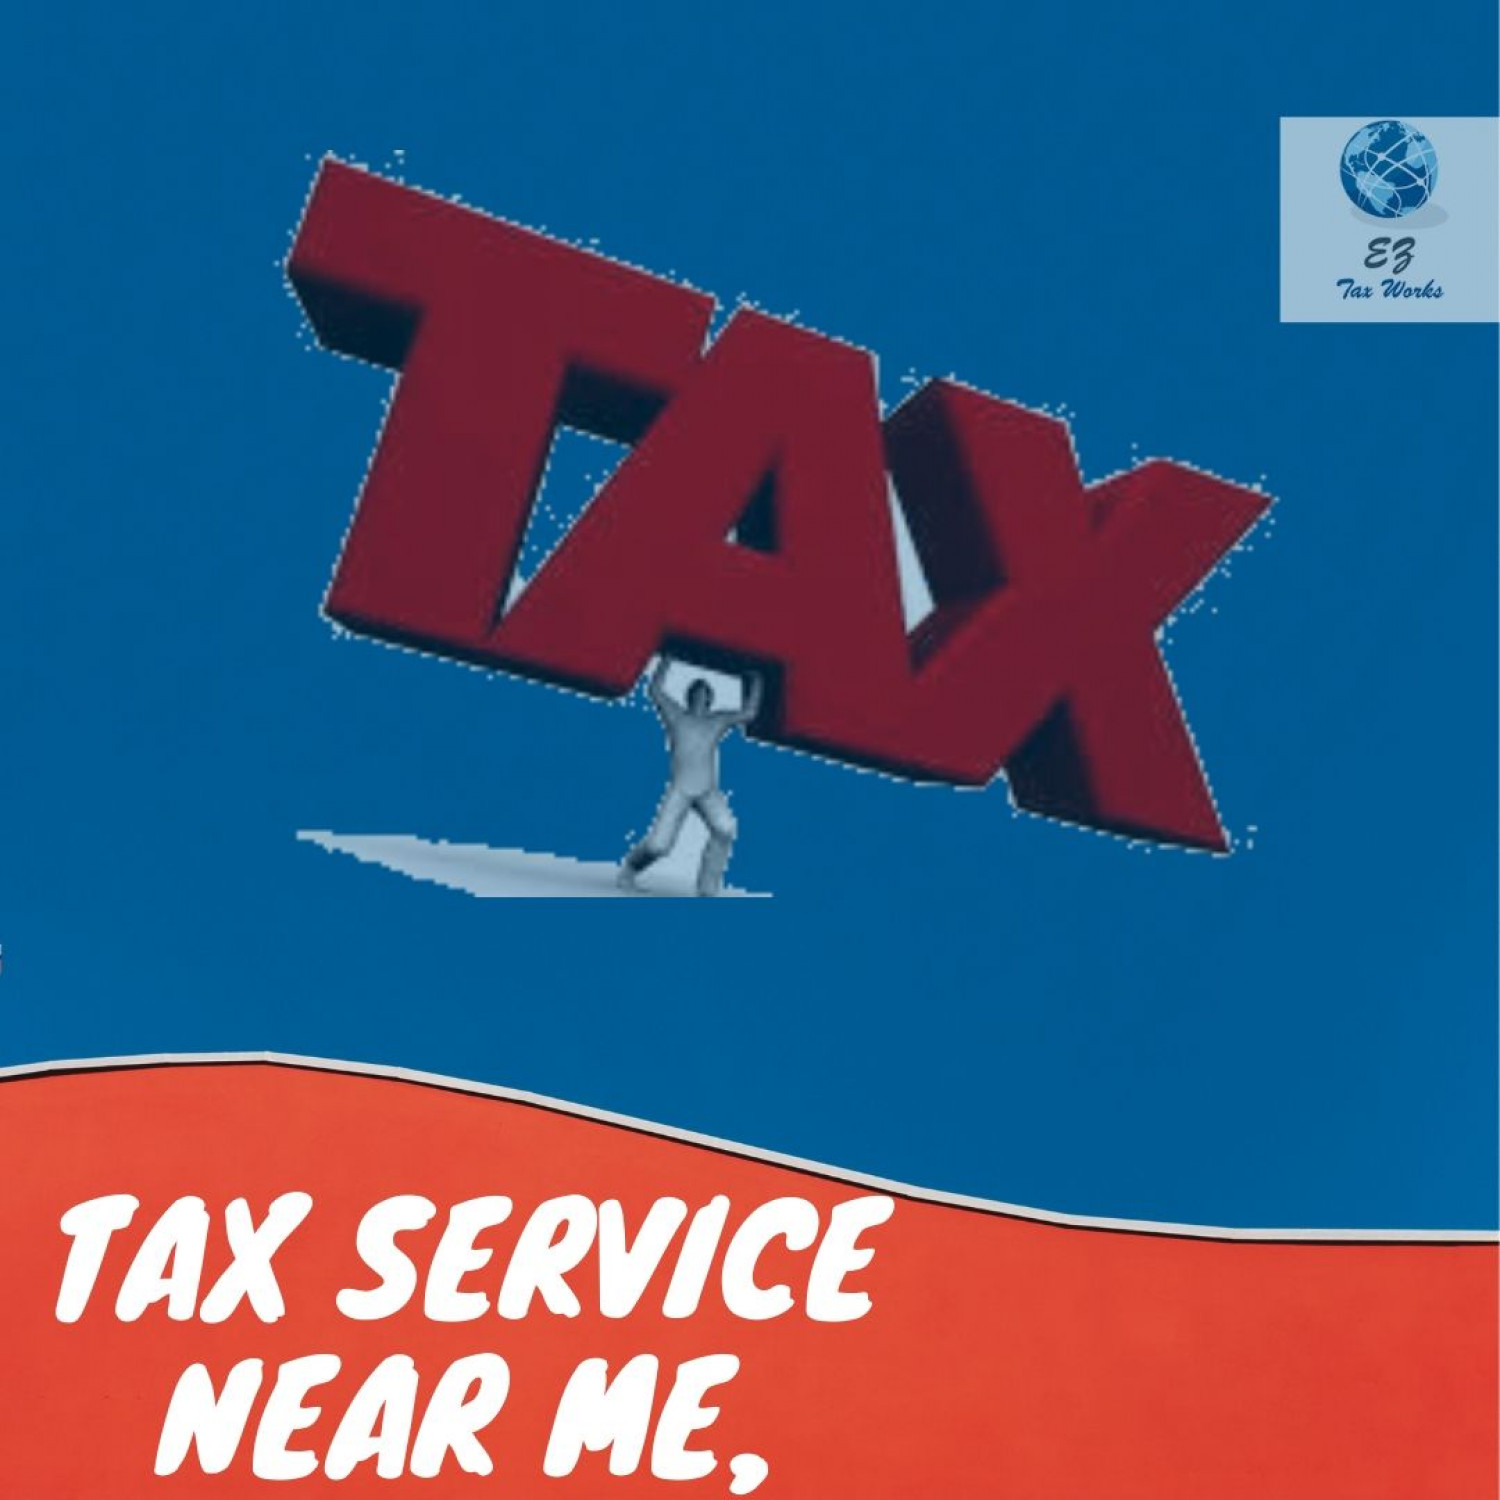 Tax Service near me Infographic